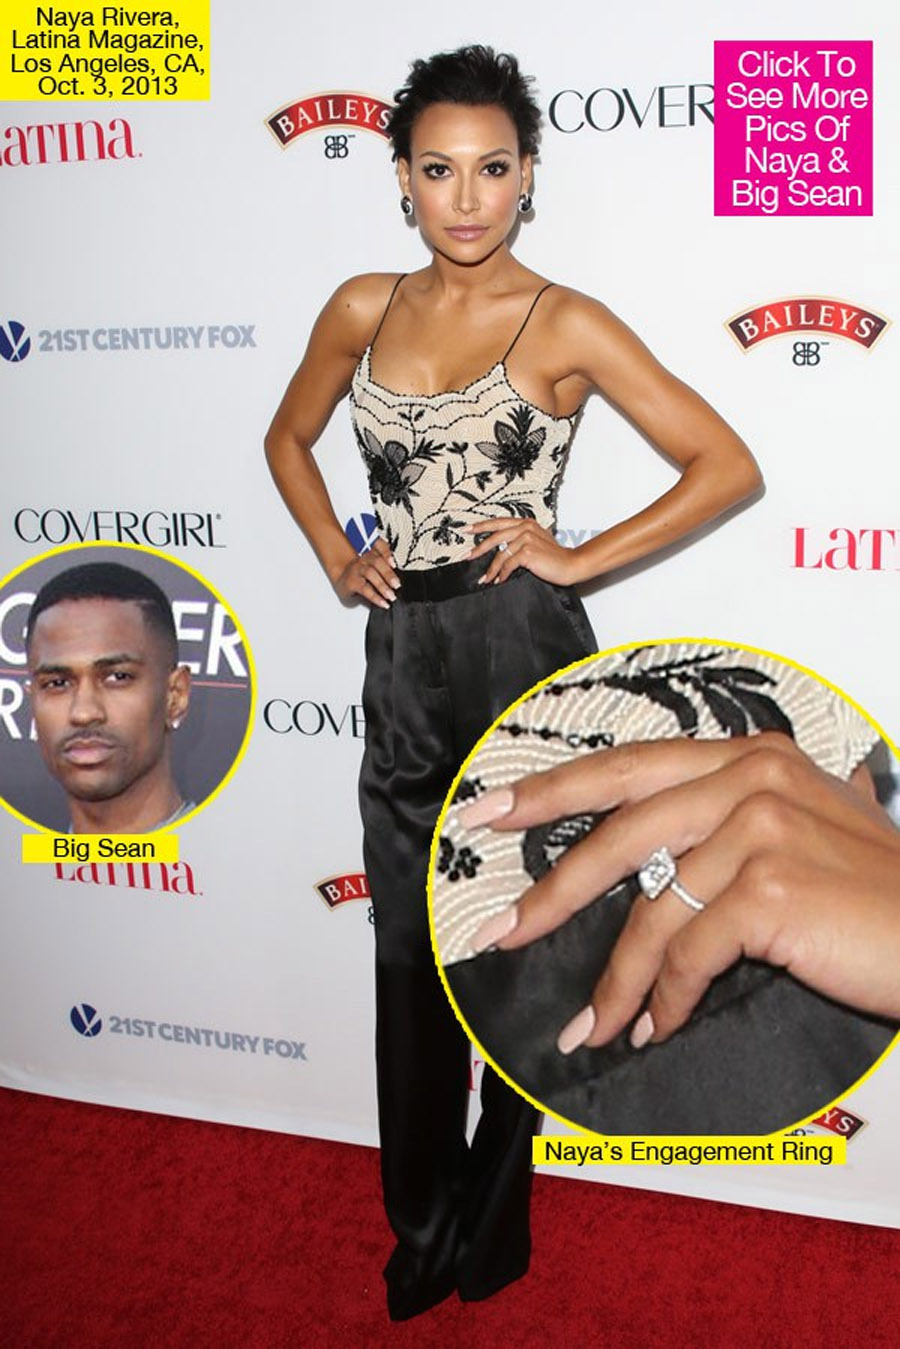 Naya Rivera Engaged to Big Sean: See Her Diamond Ring 47086